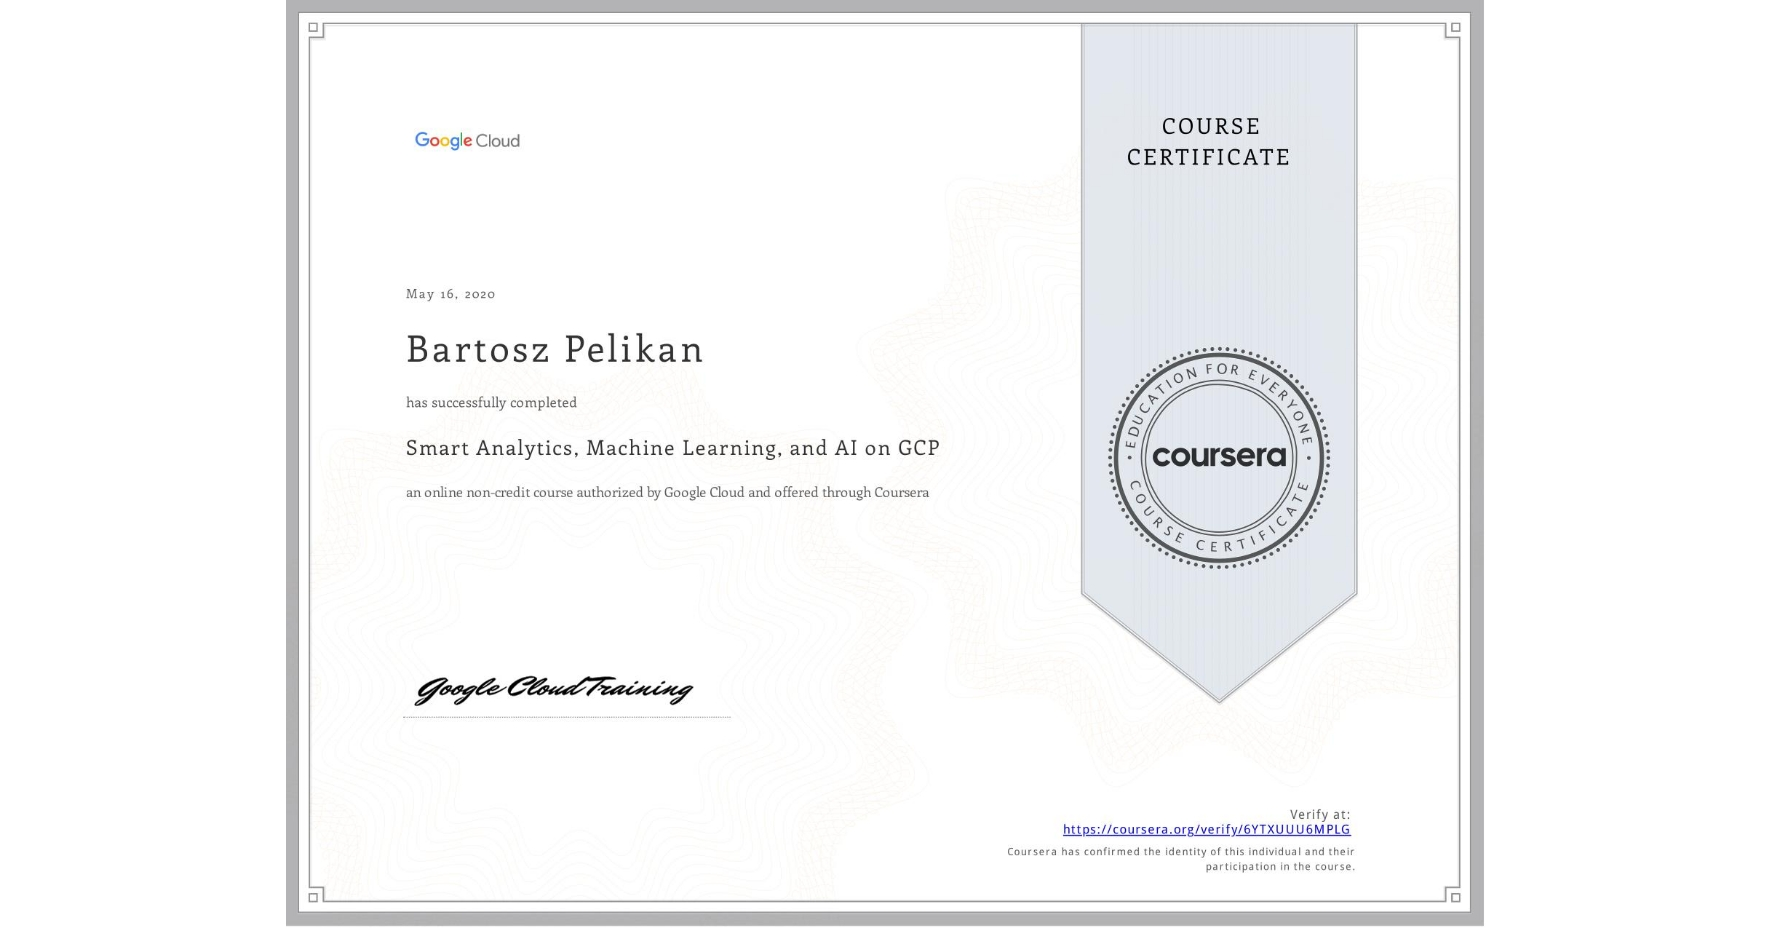 View certificate for Bartosz Pelikan, Smart Analytics, Machine Learning, and AI on GCP, an online non-credit course authorized by Google Cloud and offered through Coursera